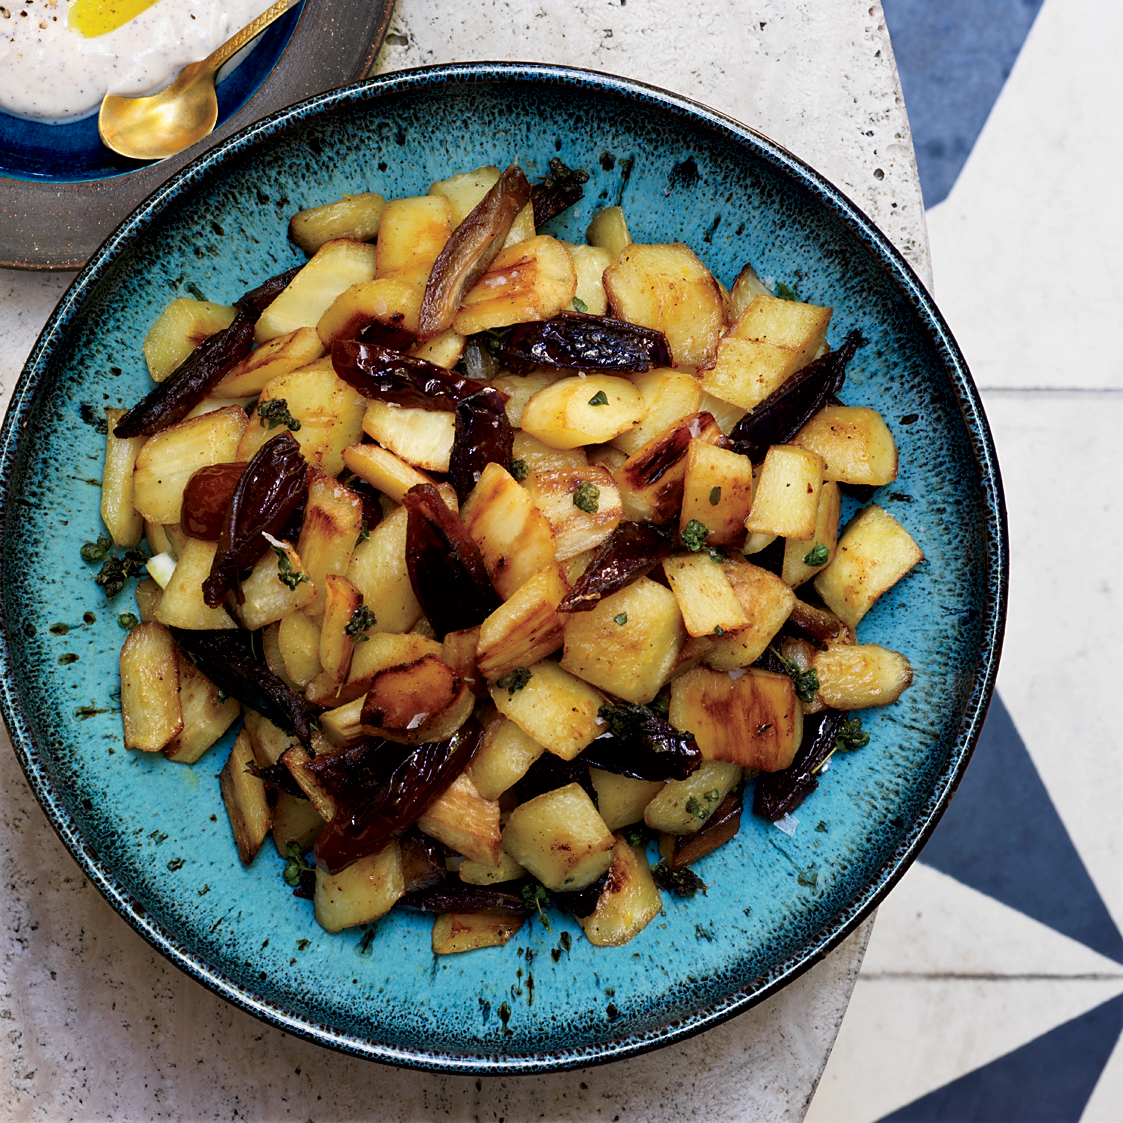 images-sys-201112-r-sauteed-parsnips-with-dates-and-spiced-yogurt.jpg